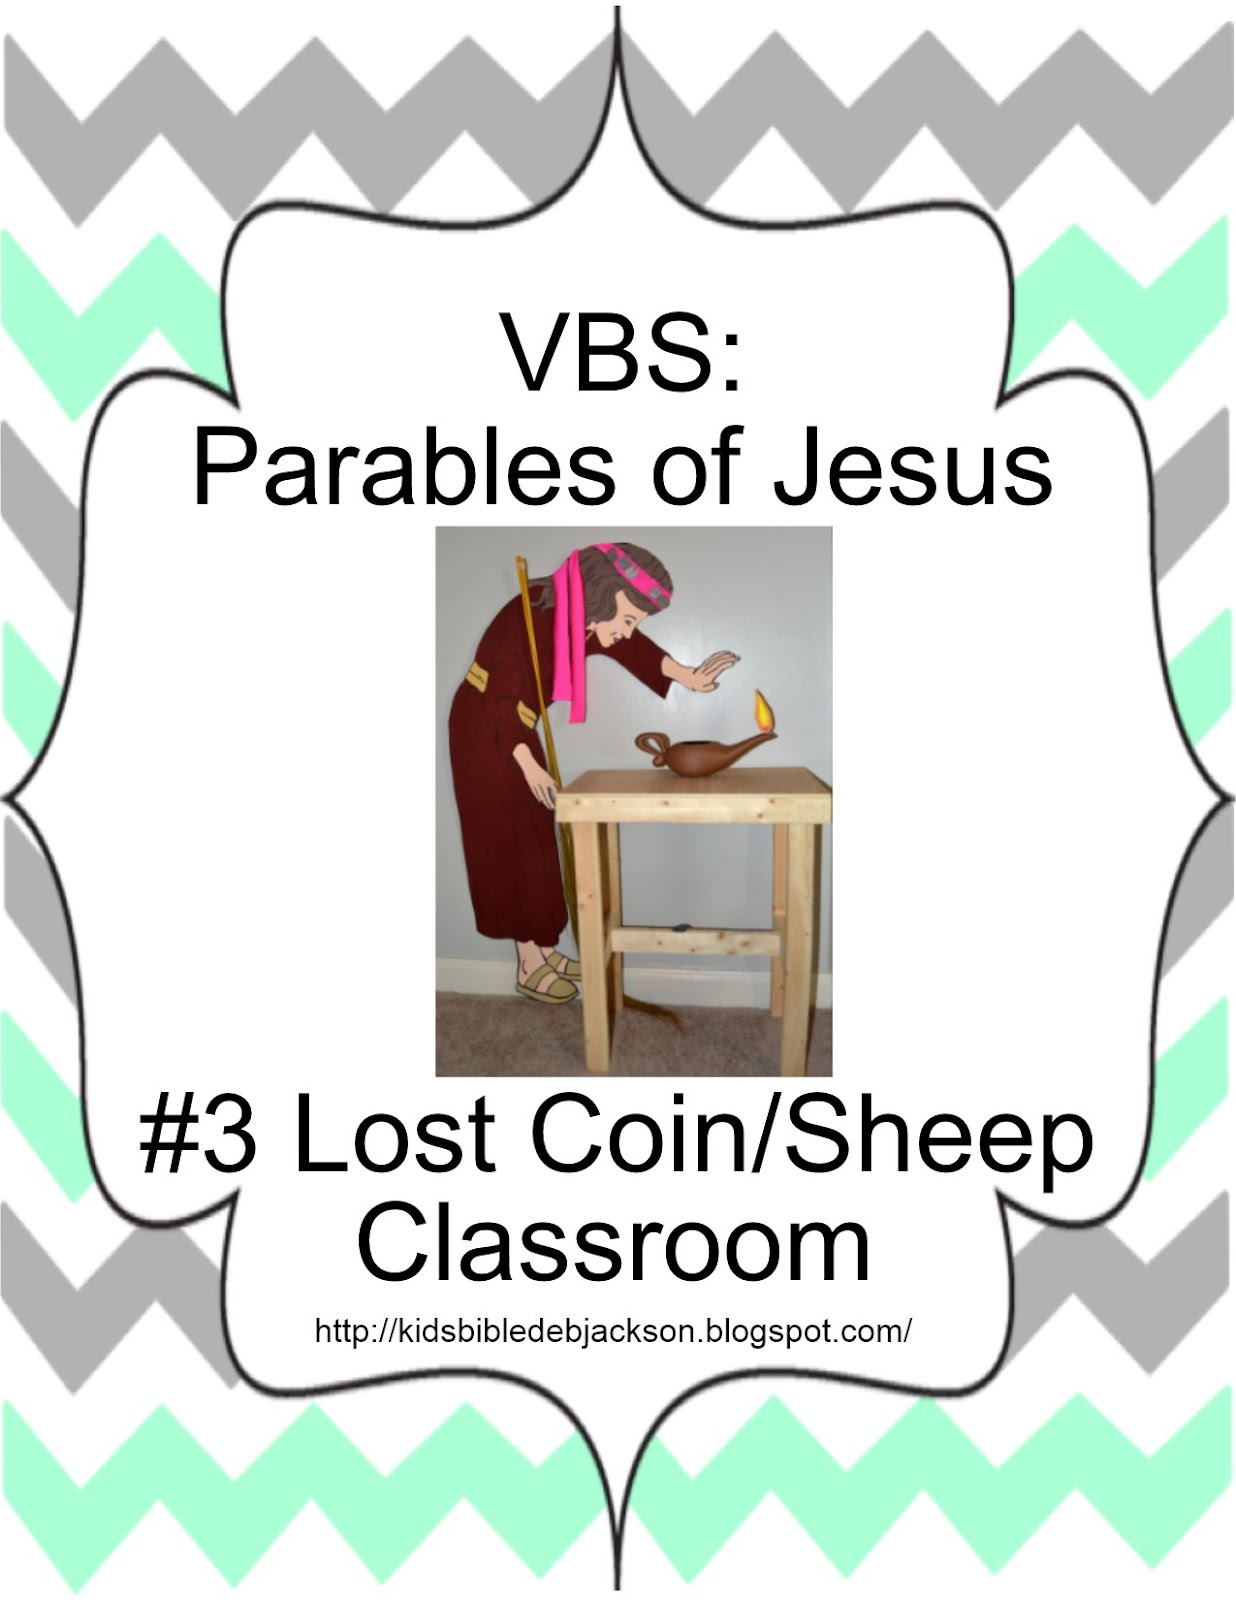 http://kidsbibledebjackson.blogspot.com/2014/06/parables-of-jesus-vbs-day-3the-lost.html